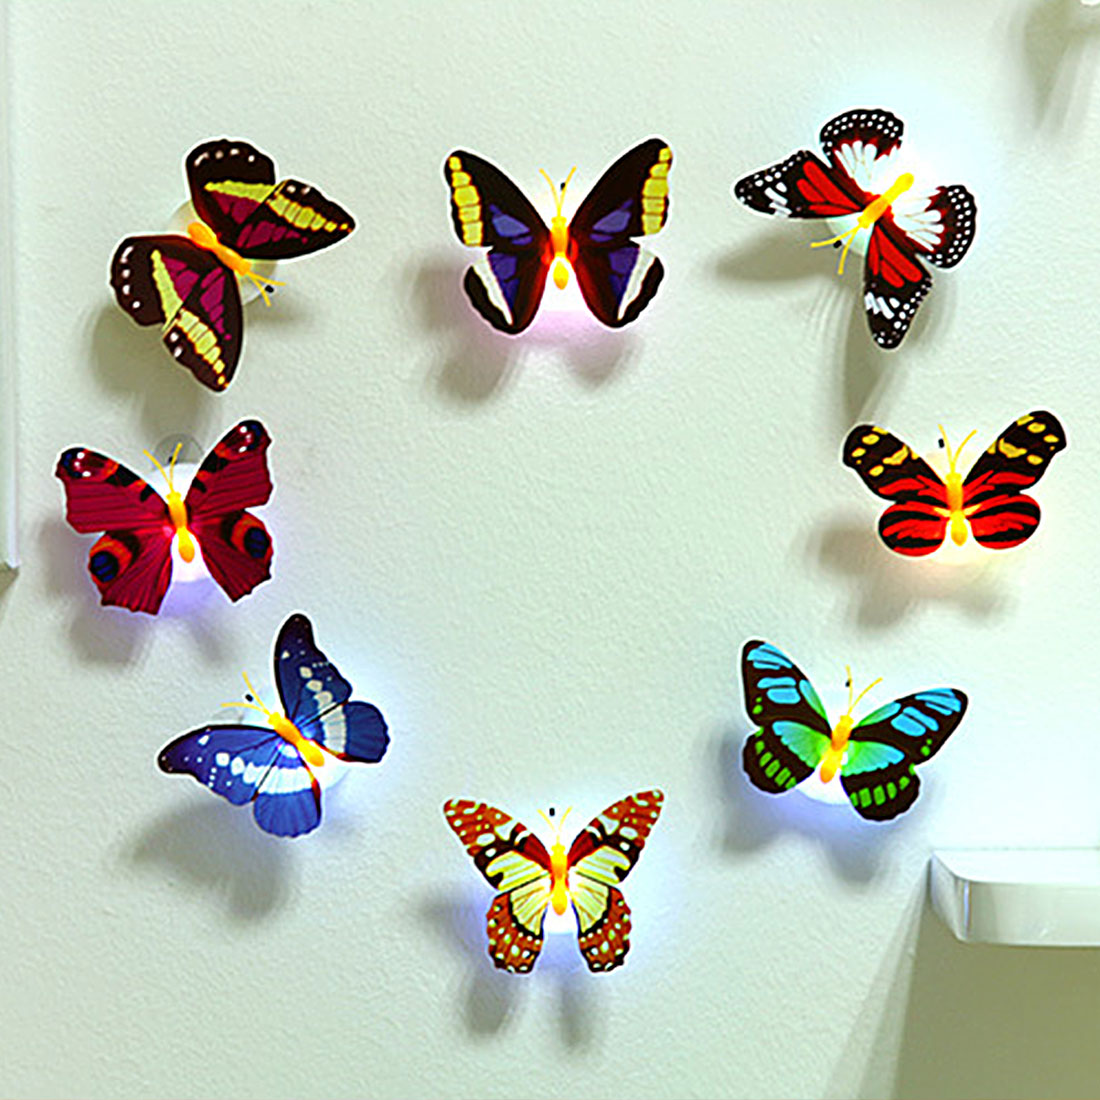 Lights & Lighting Persevering Night Light Lamp With Suction Pad Colorful Changing Butterfly Led Night Light Lamp Home Room Party Desk Wall Decor Latest Technology